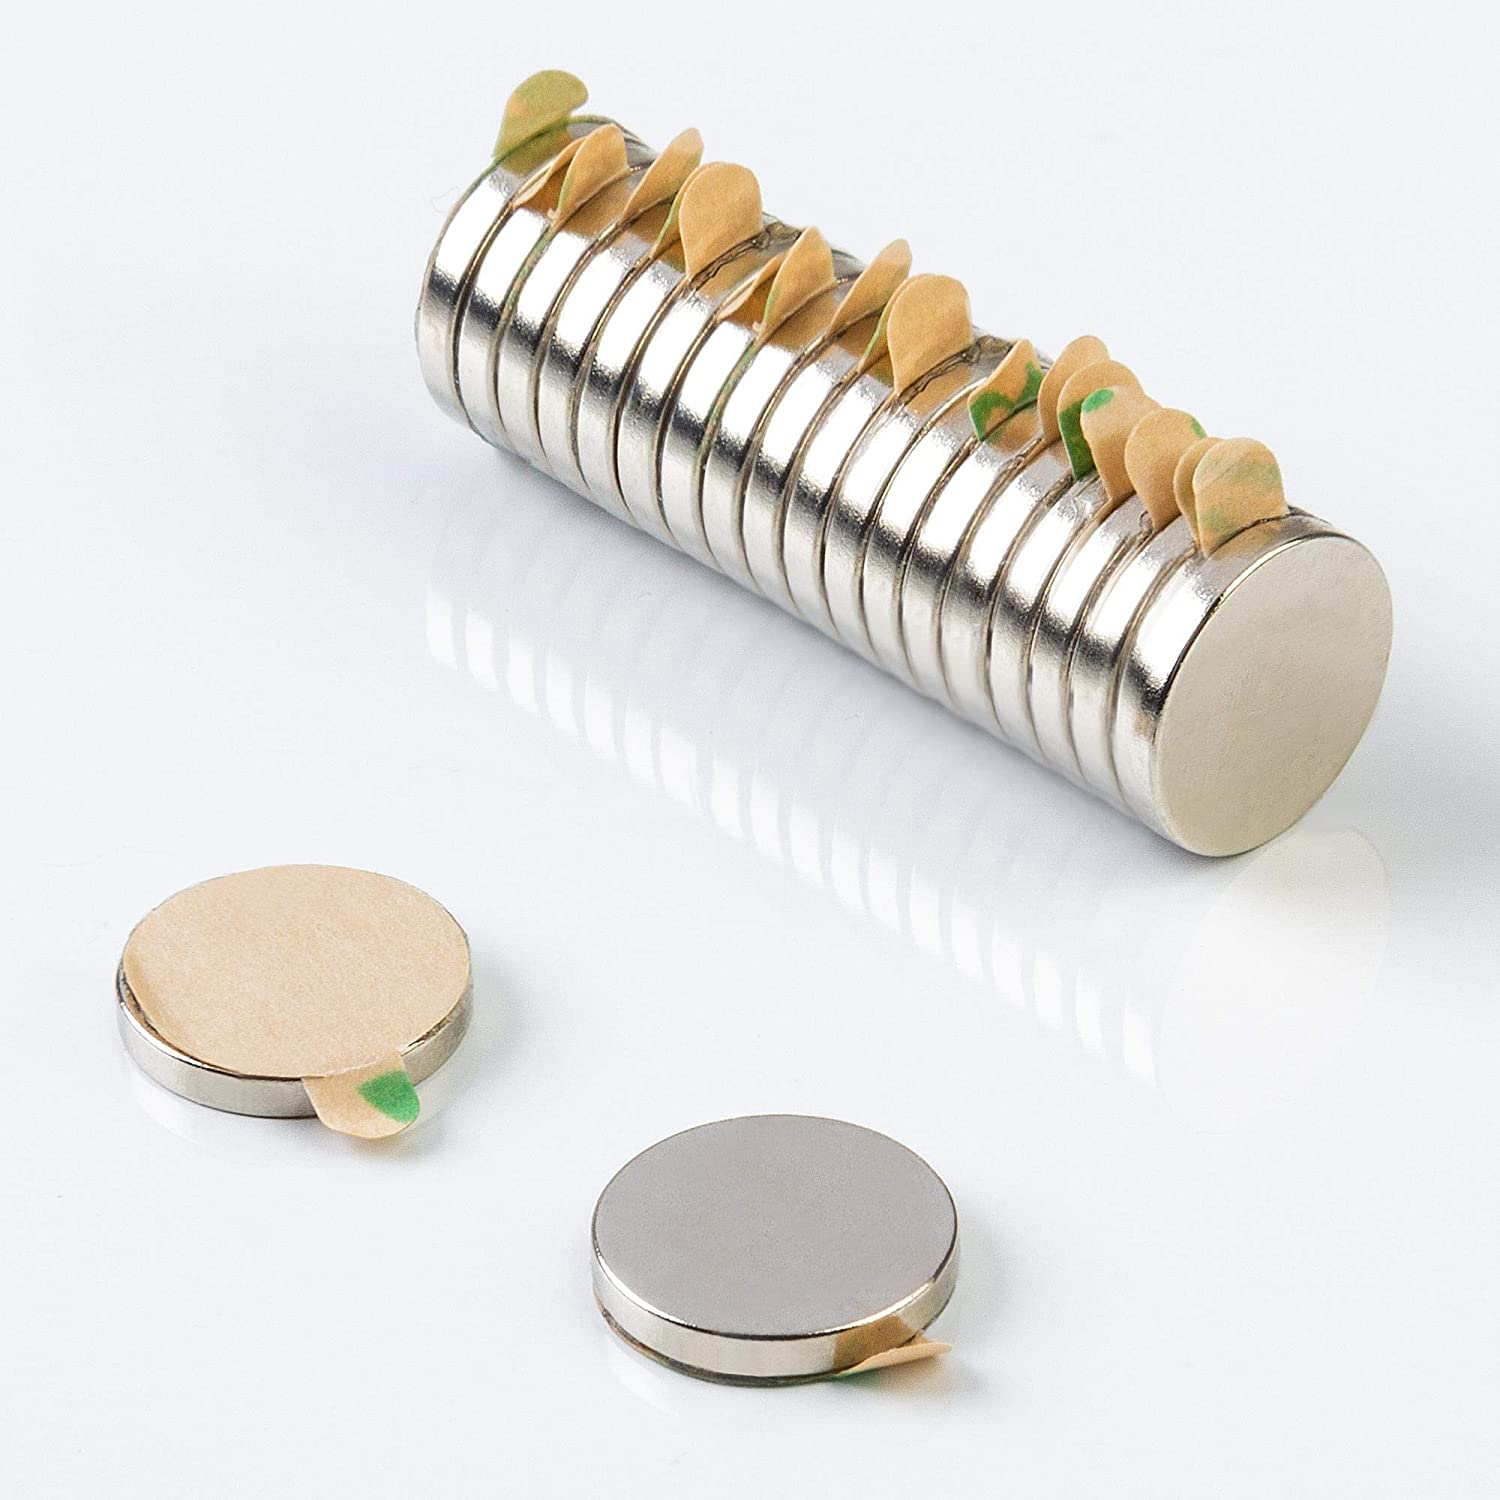 disc magnets 21010105 10x1.5mm NiCuNi coating round self-adhesive stick-on magnets ECENCE Neodymium magnets 20